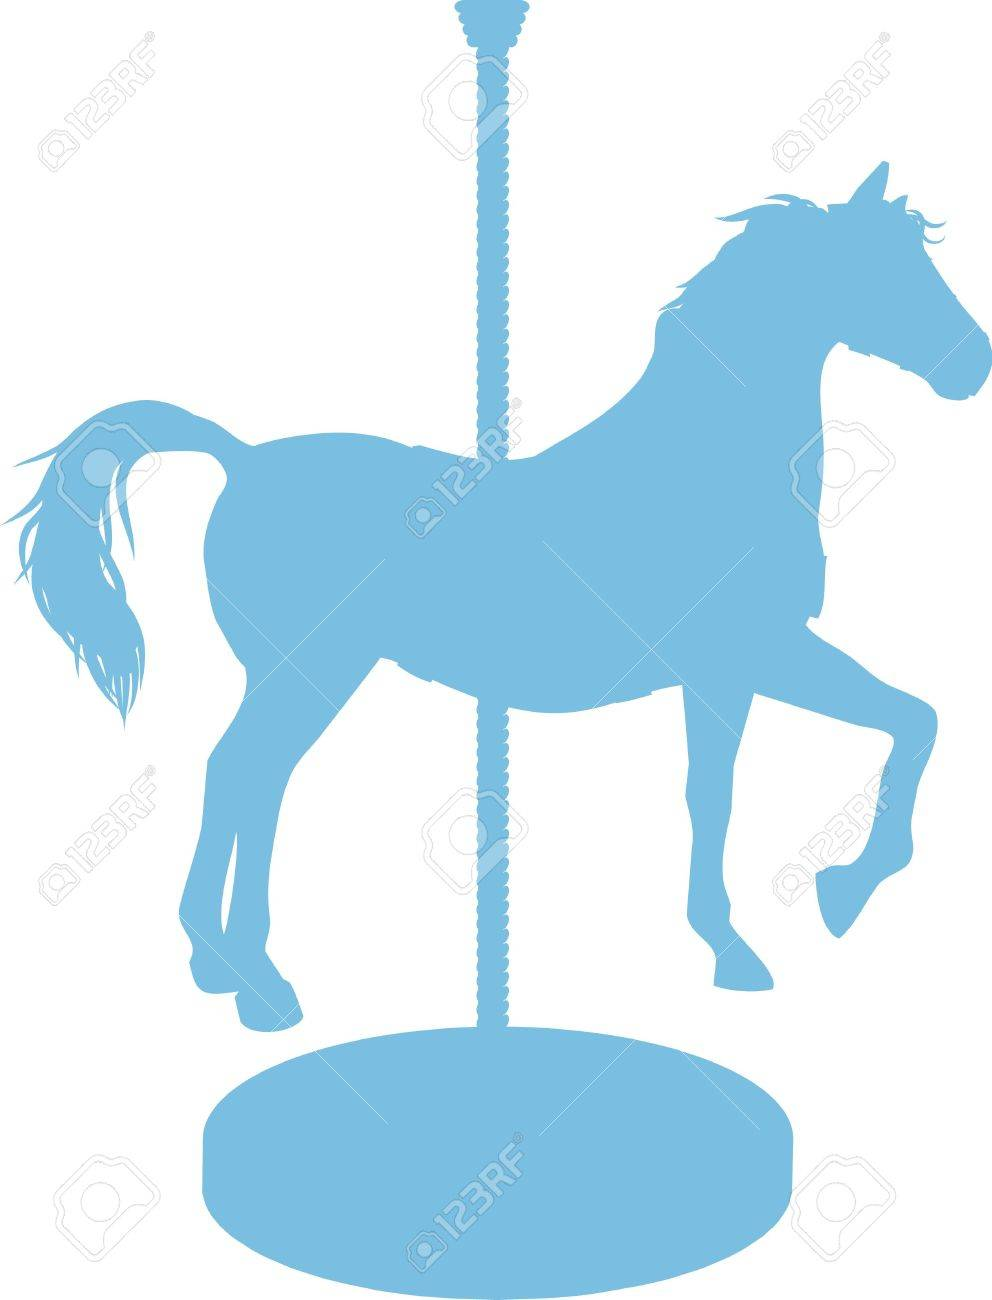 Carousel Horse is a silhouette of a carousel horse..